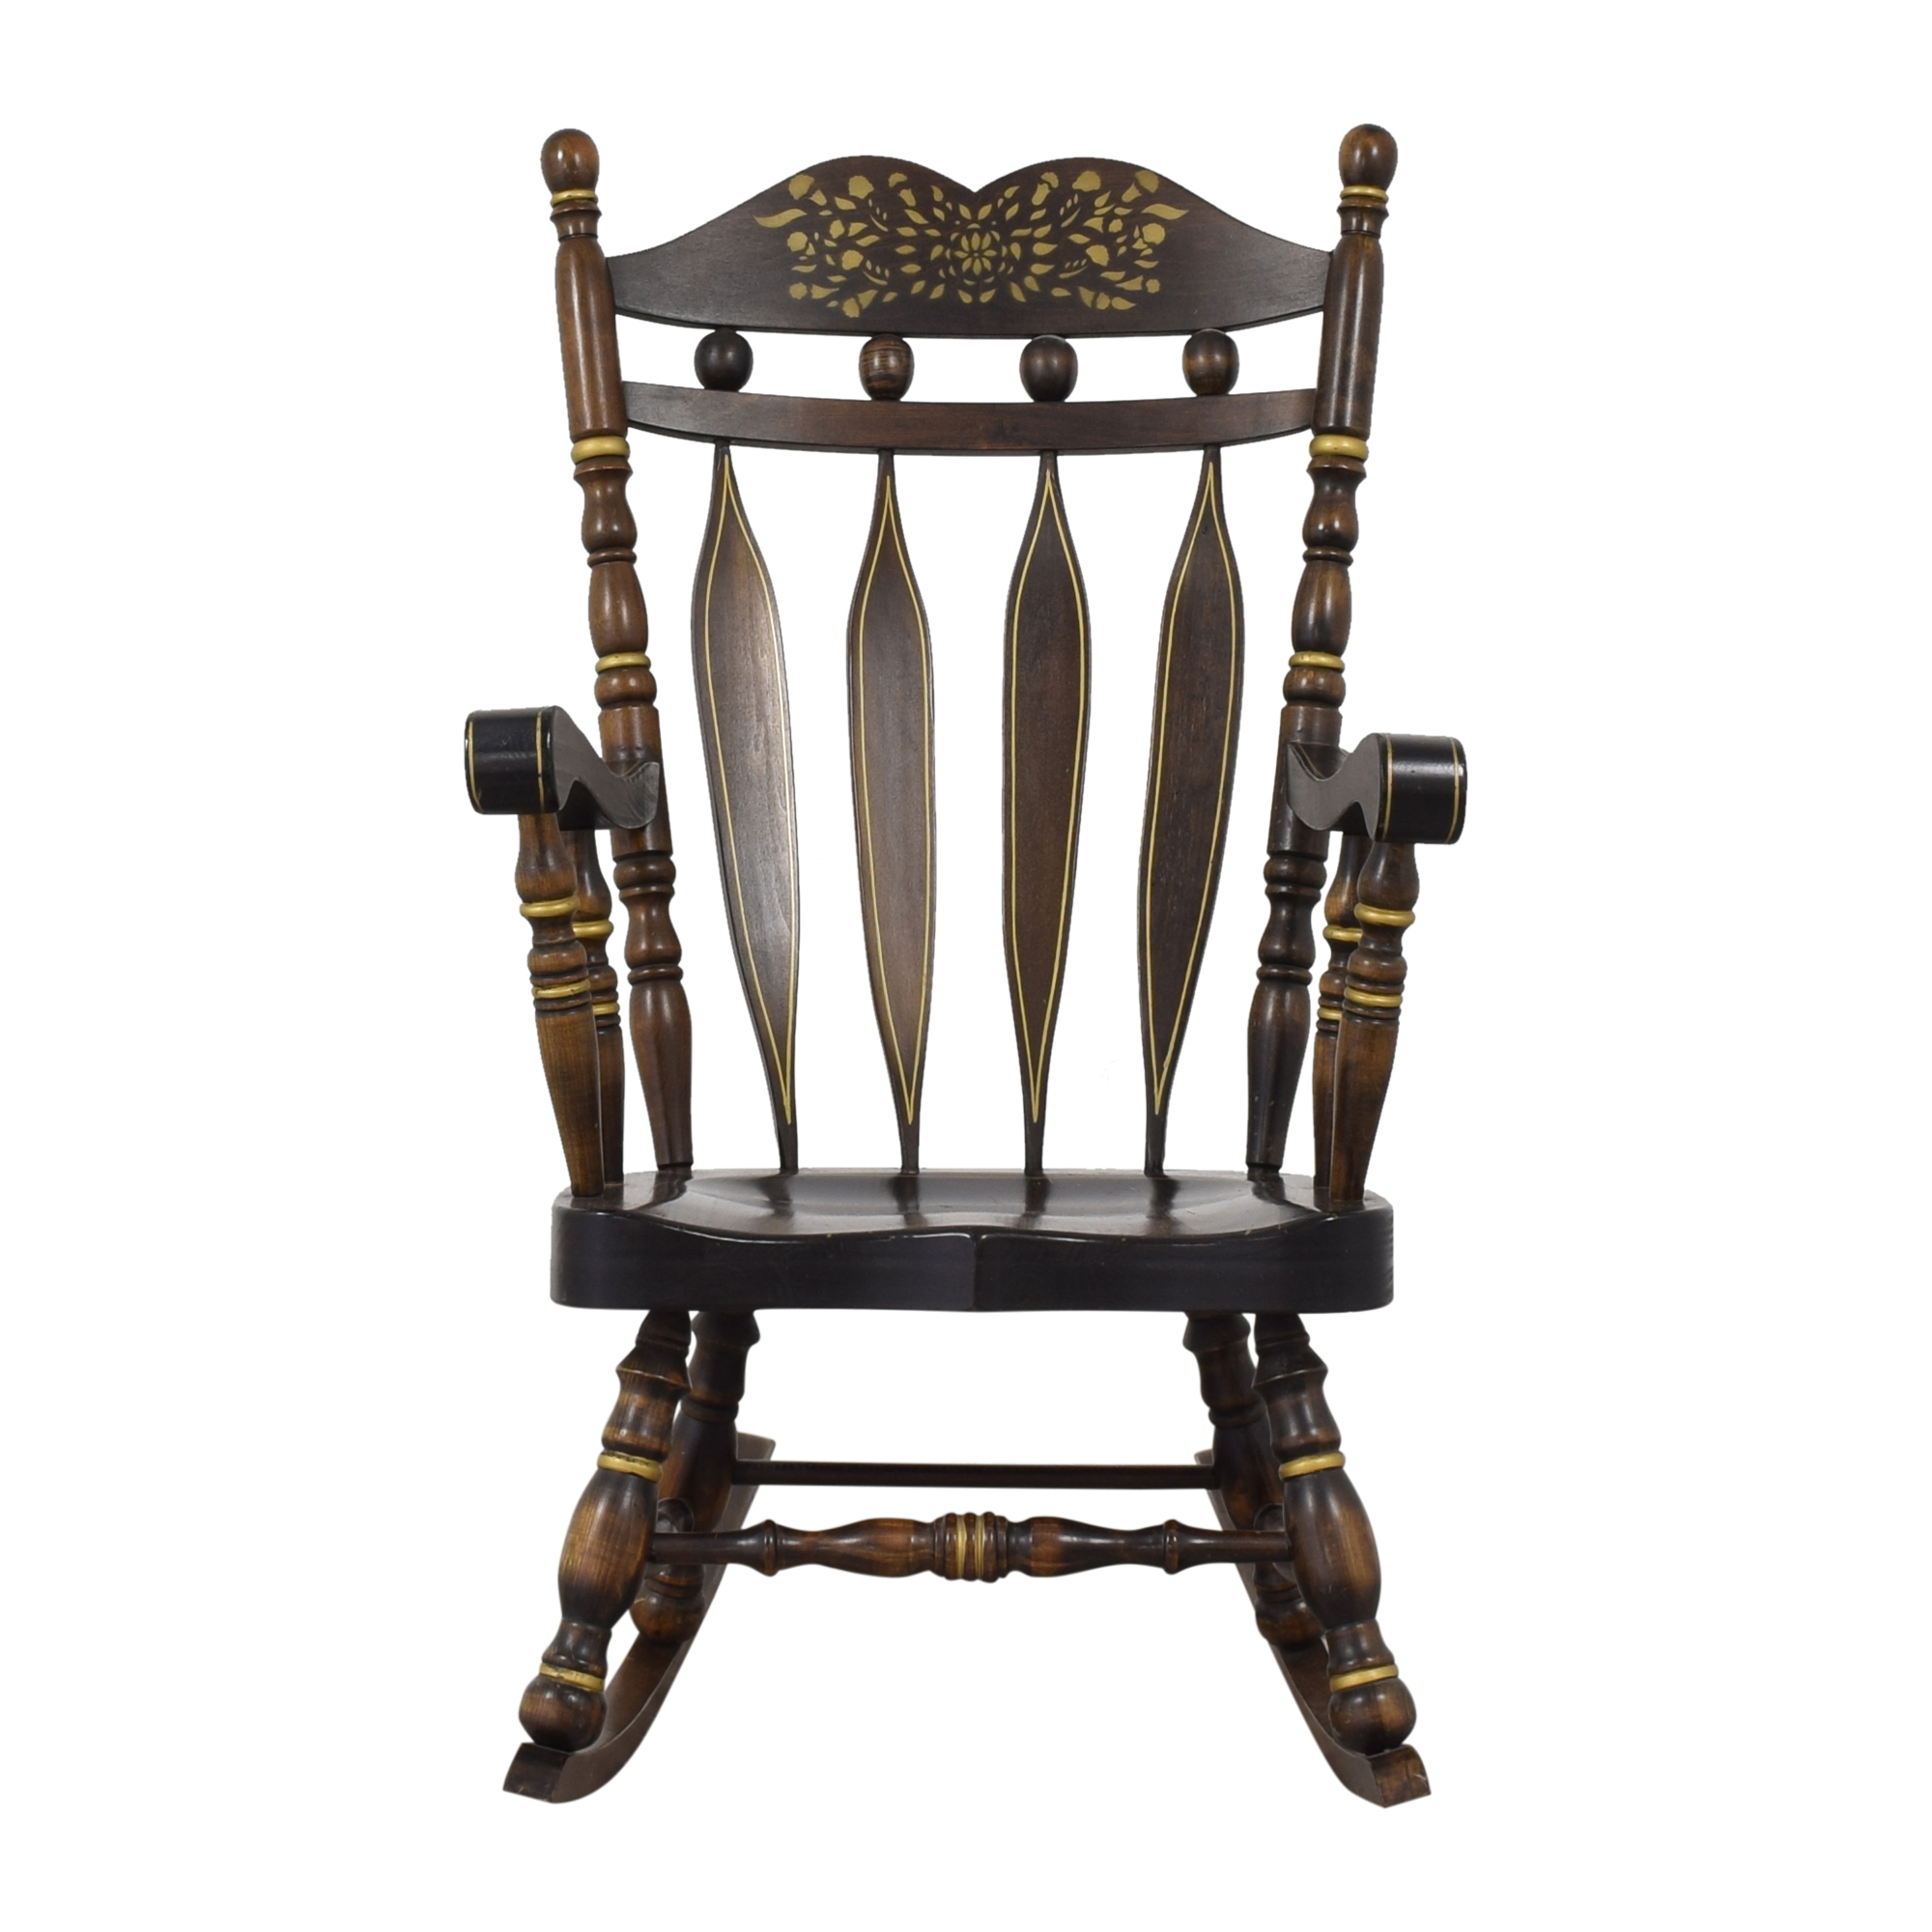 Vintage-Style Rocking Chair ma